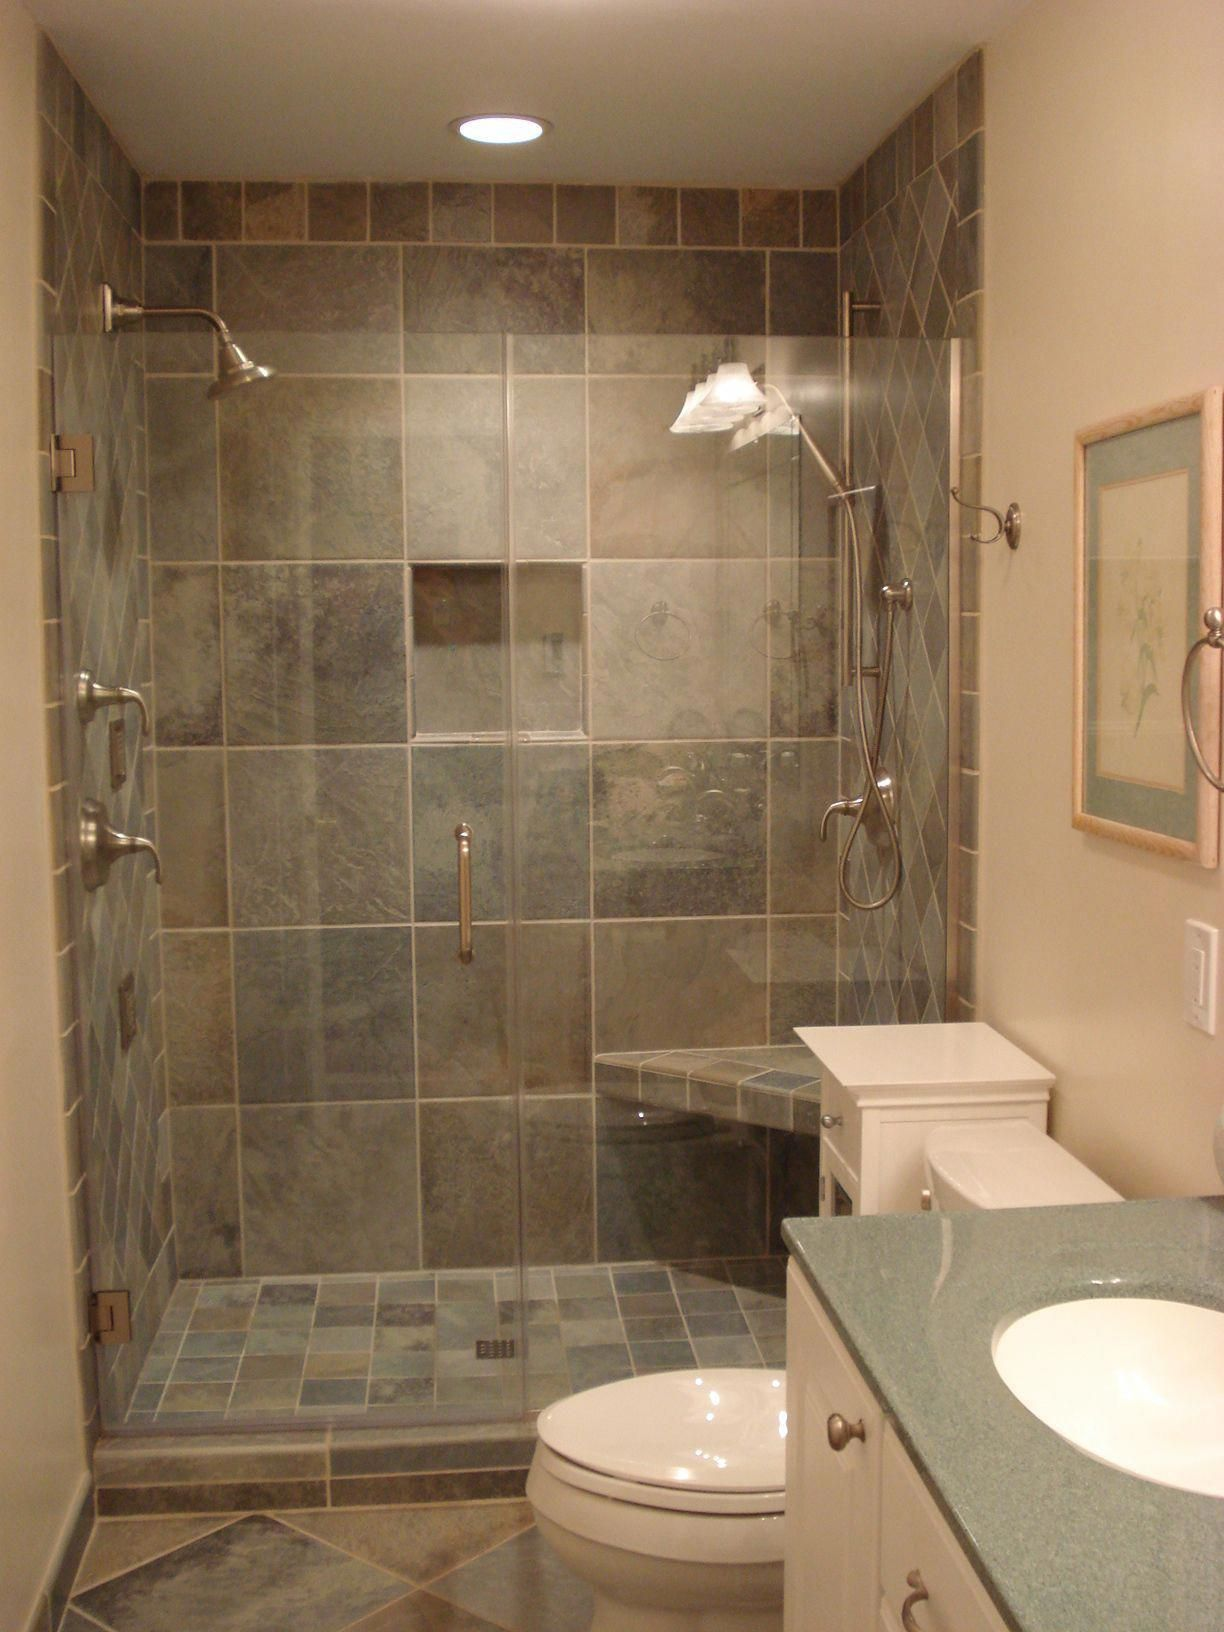 Bathroom Bathroom And Shower Remodel Ideas Tricks For A Limited Space Best Area Renovate Bathroom Remodel Shower Small Bathroom Makeover Bathroom Remodel Cost